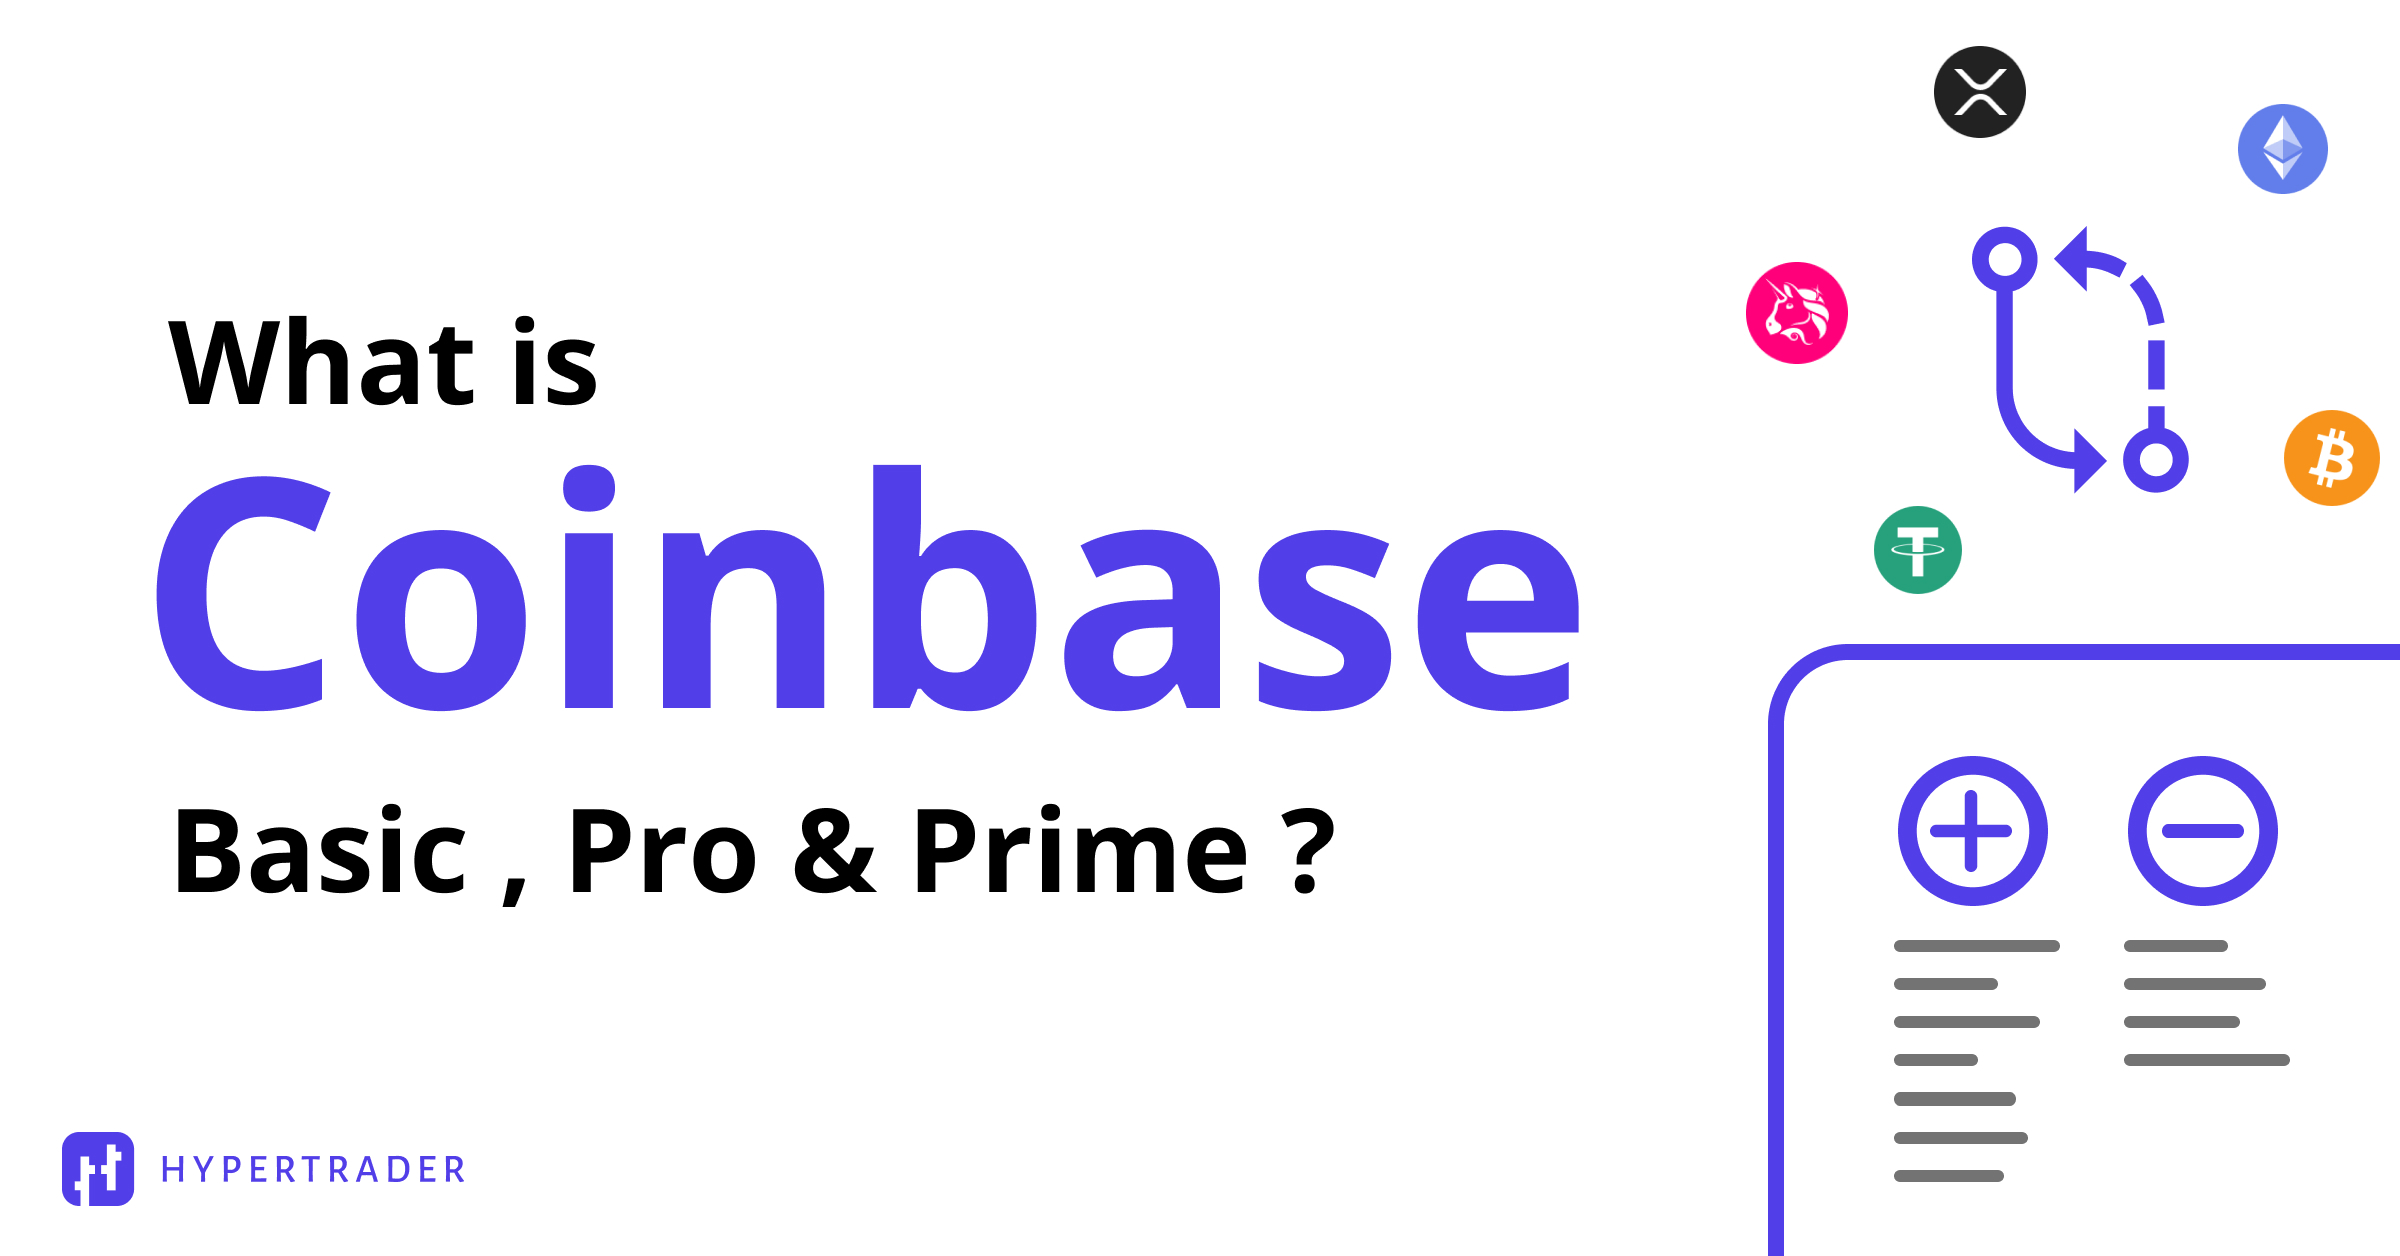 What is Coinbase, Coinbase Pro, and Coinbase Prime?